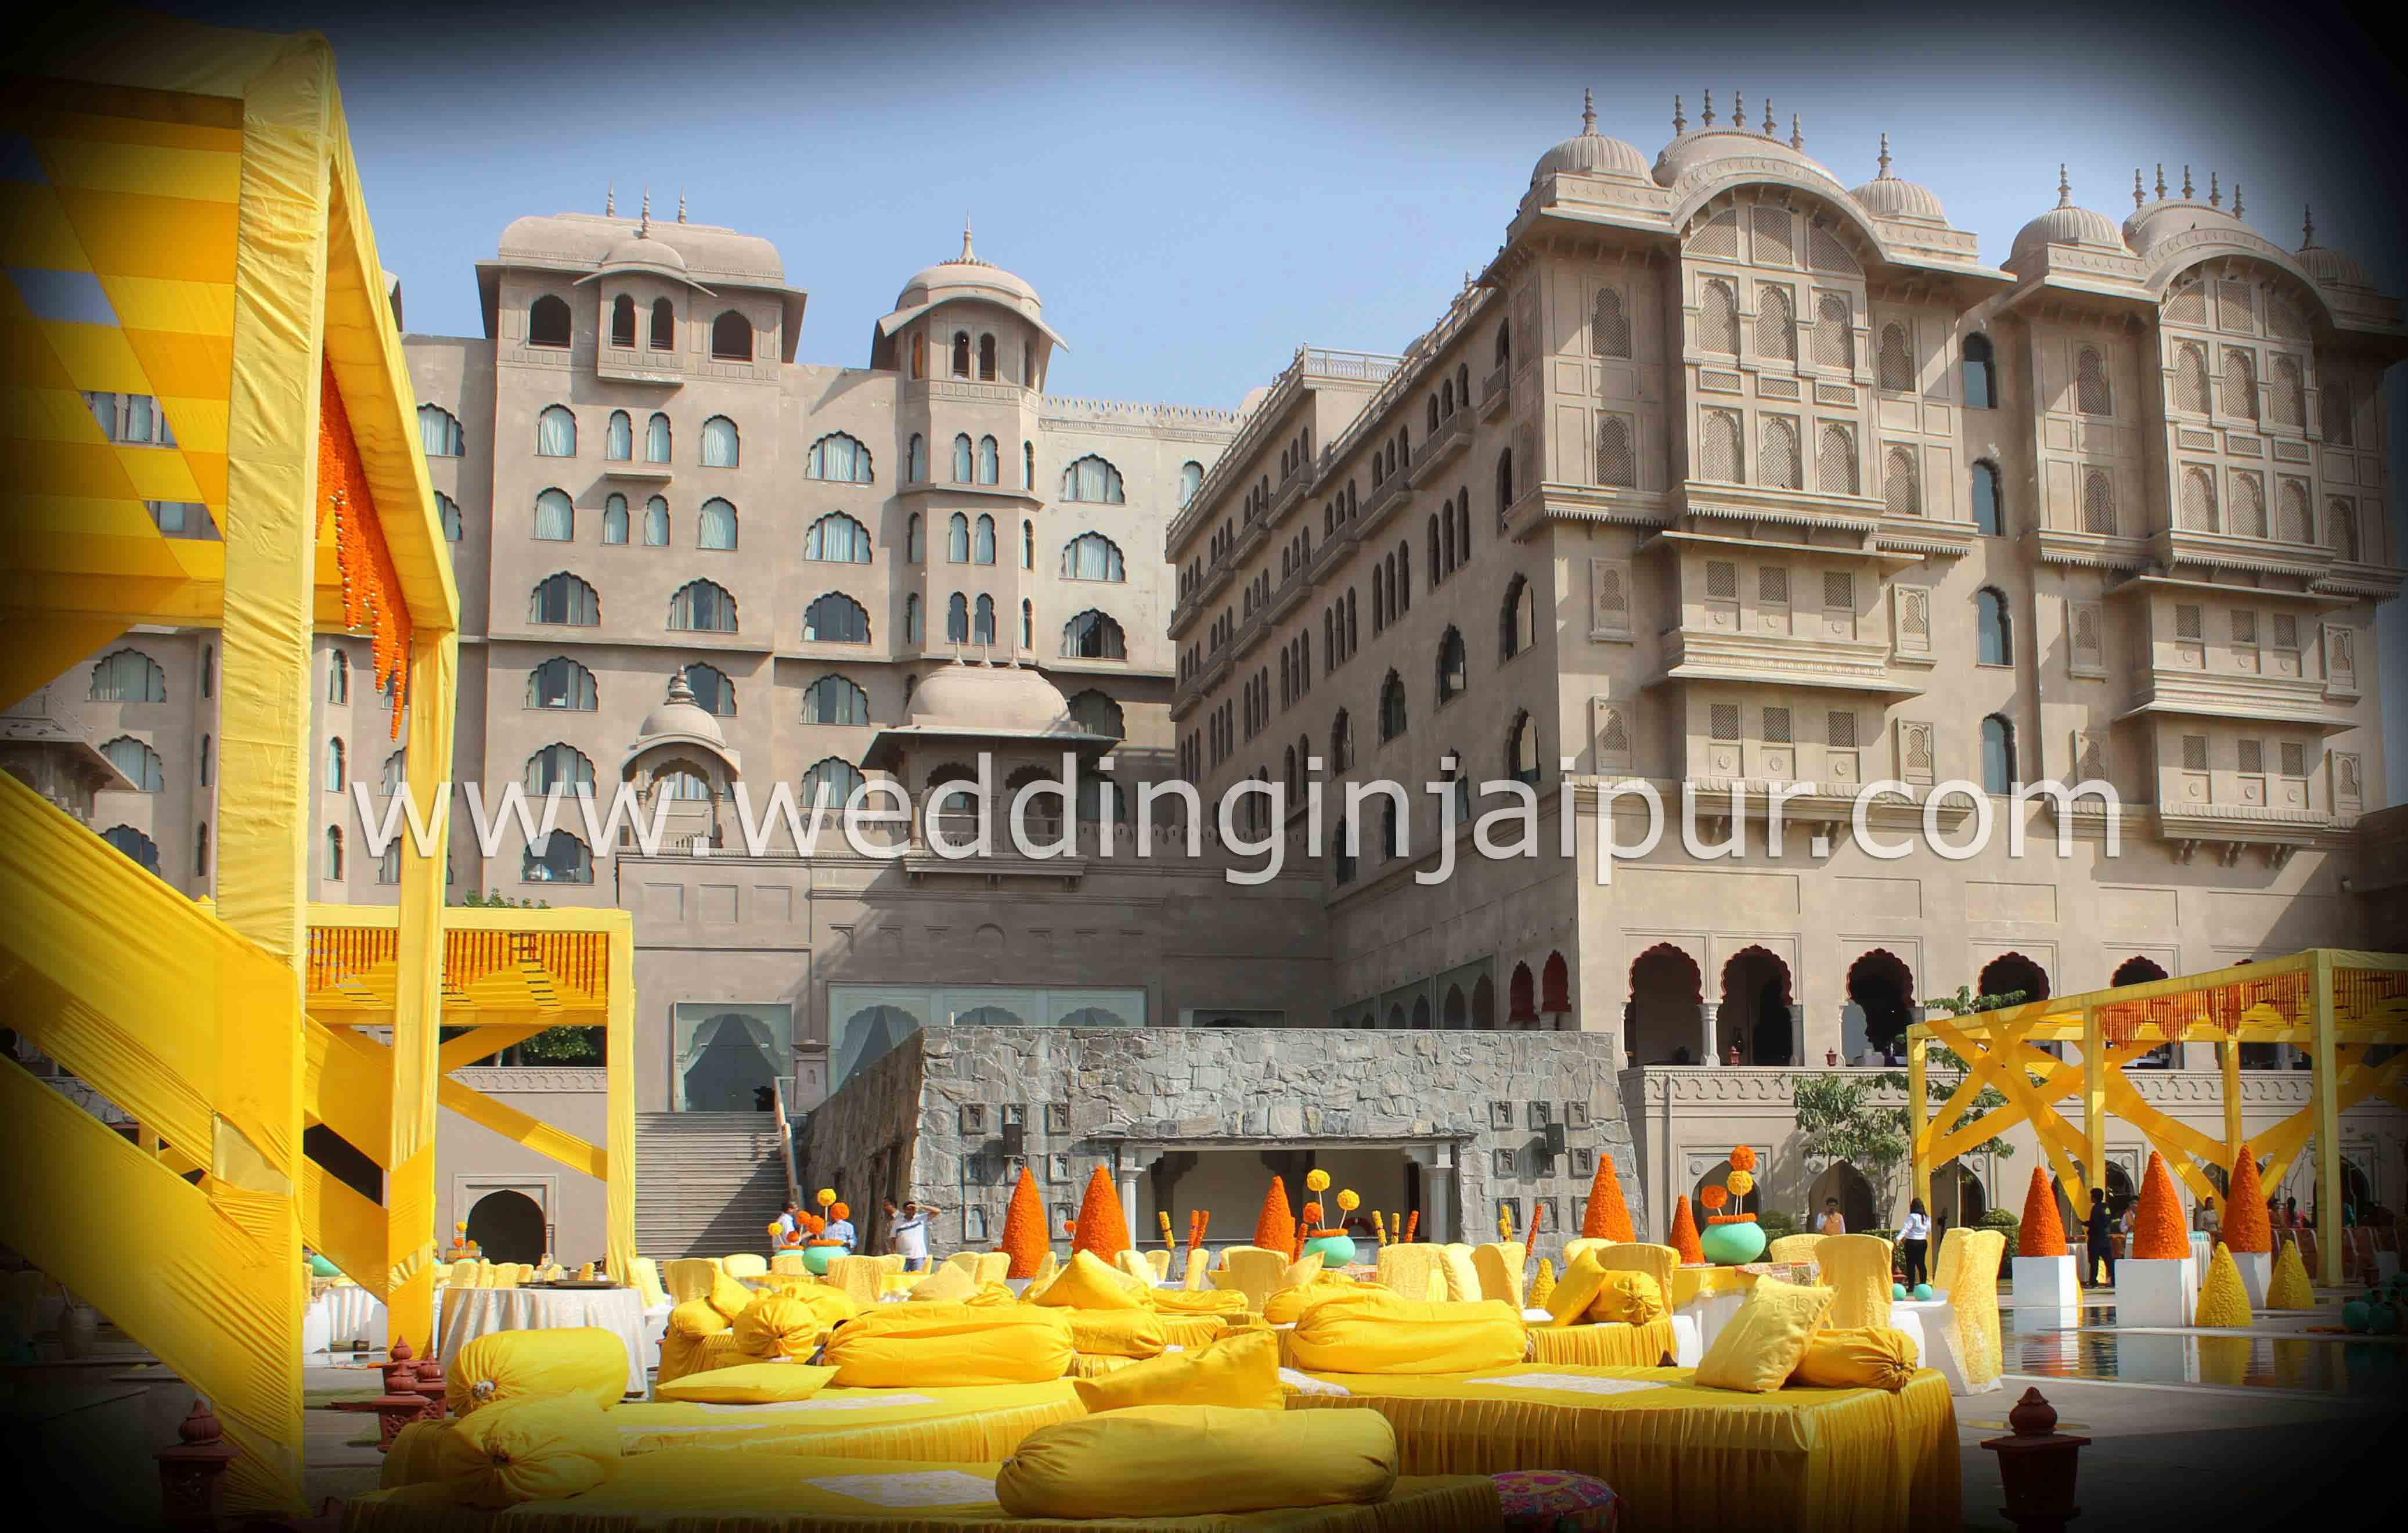 78 wedding decorations jaipur theme decoration in home wedding decorations jaipur photos gallery some decor ideas attached junglespirit Image collections